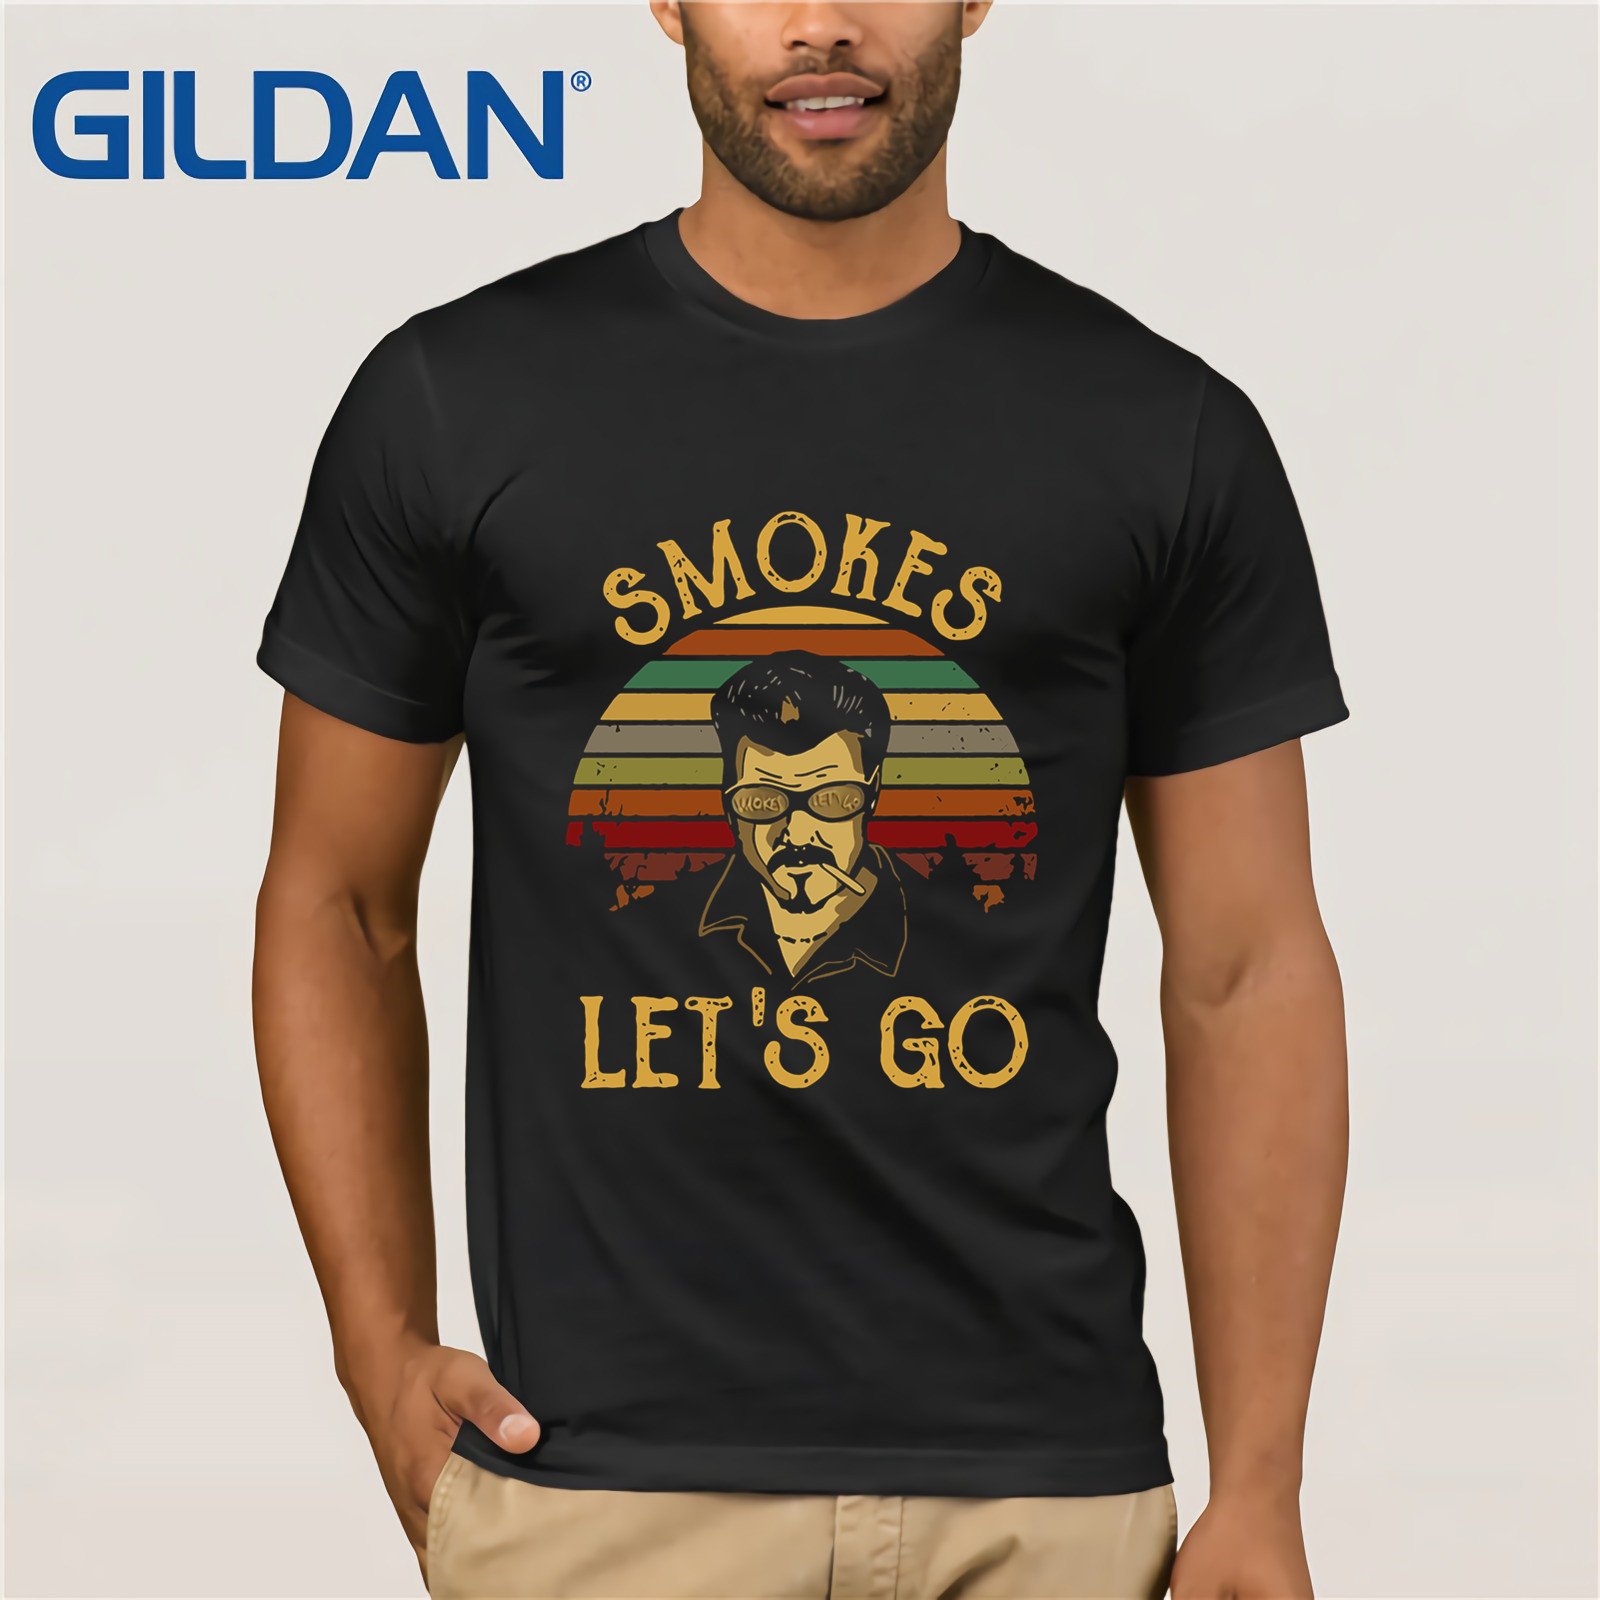 Trailer Park Boys Smokes Let's Go Vintage Shirt Summer Men's Short Sleeve T-Shirt For Men Tops  Funny Tees Cotton Tops T Shirt